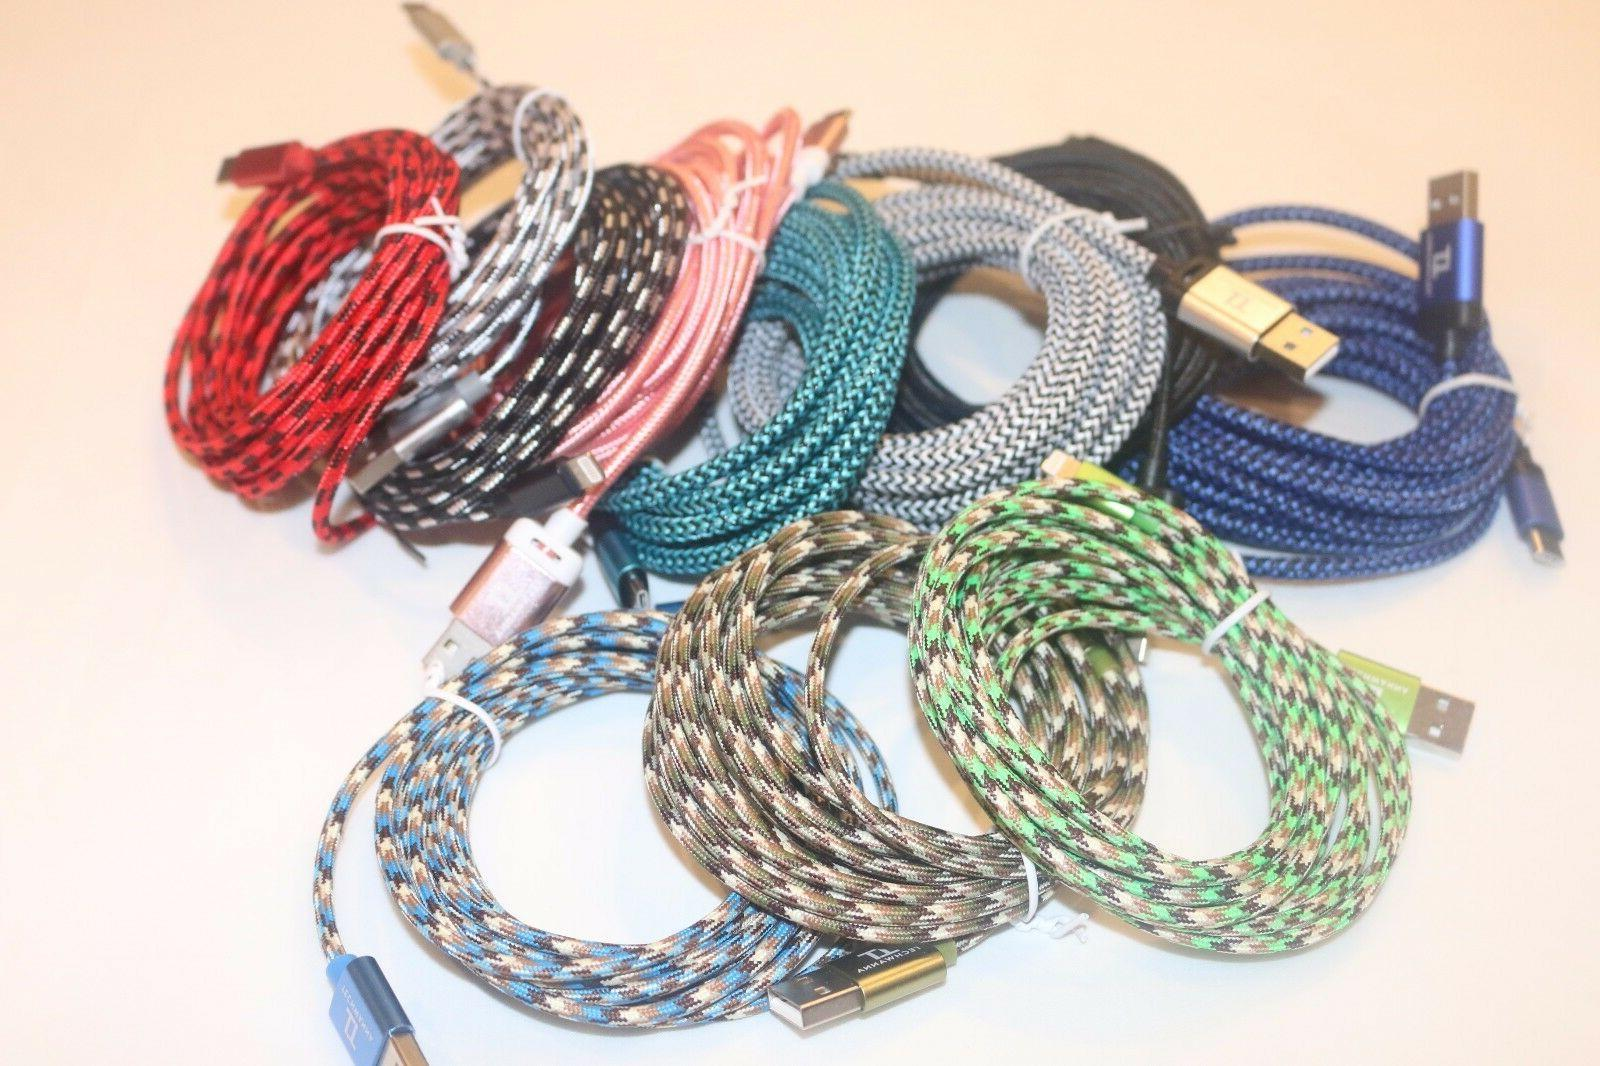 2x 10 FT extra long Braided Type C USB Cable Charging cord F